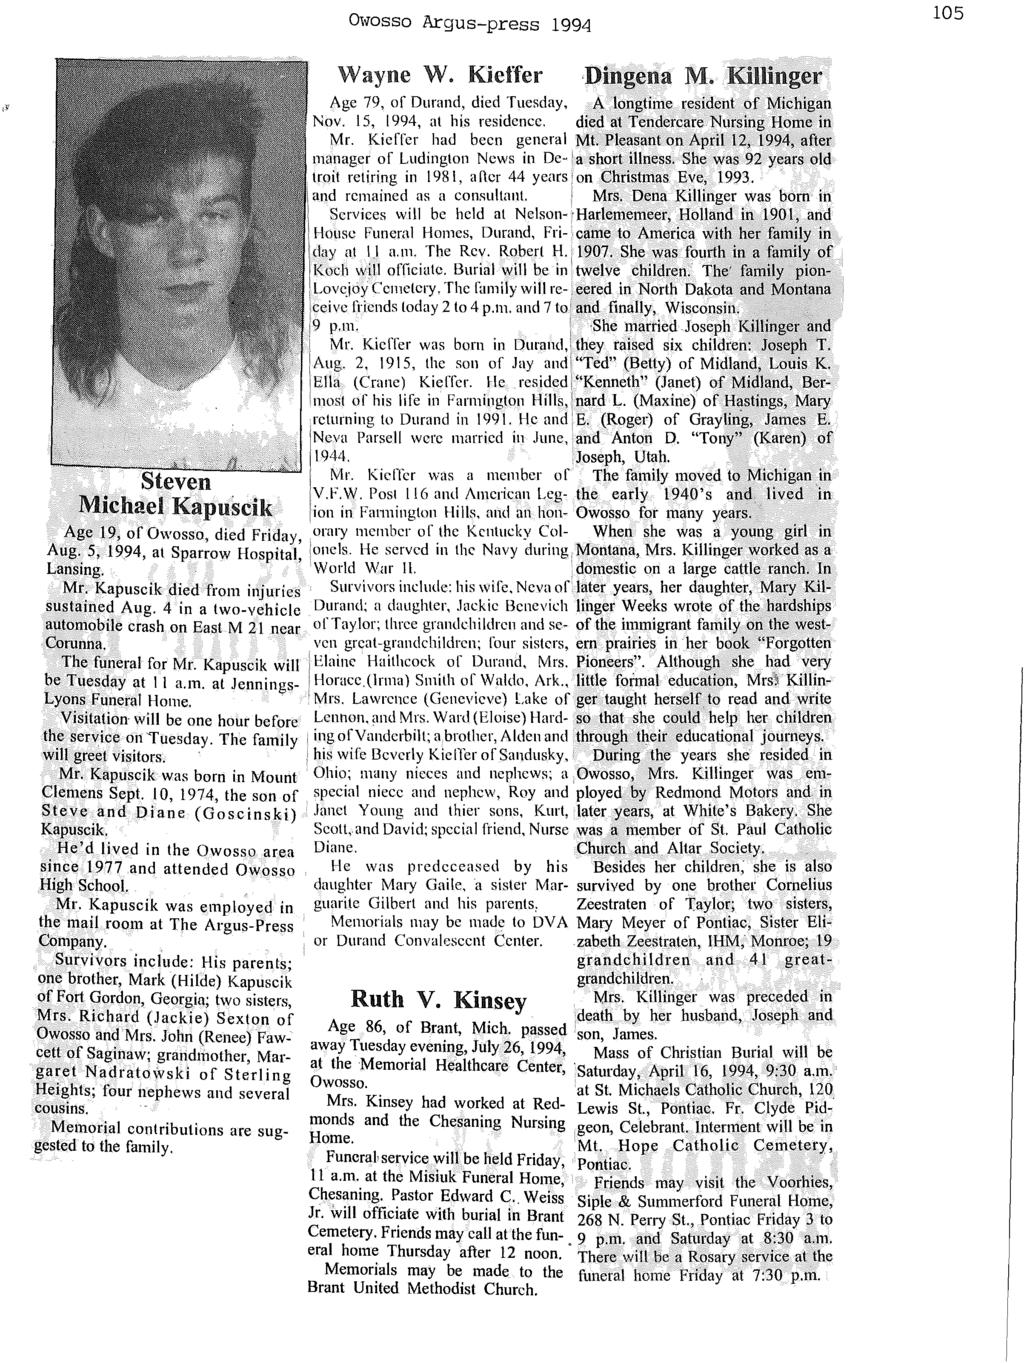 Owosso Argus-press 1994 105 Wayne W. Kieffer,Dingena M. Killinger Age 79, of Durand, died Tuesday, A longtime ~esident of Michigan Nov. 15, 1994, at his residence.